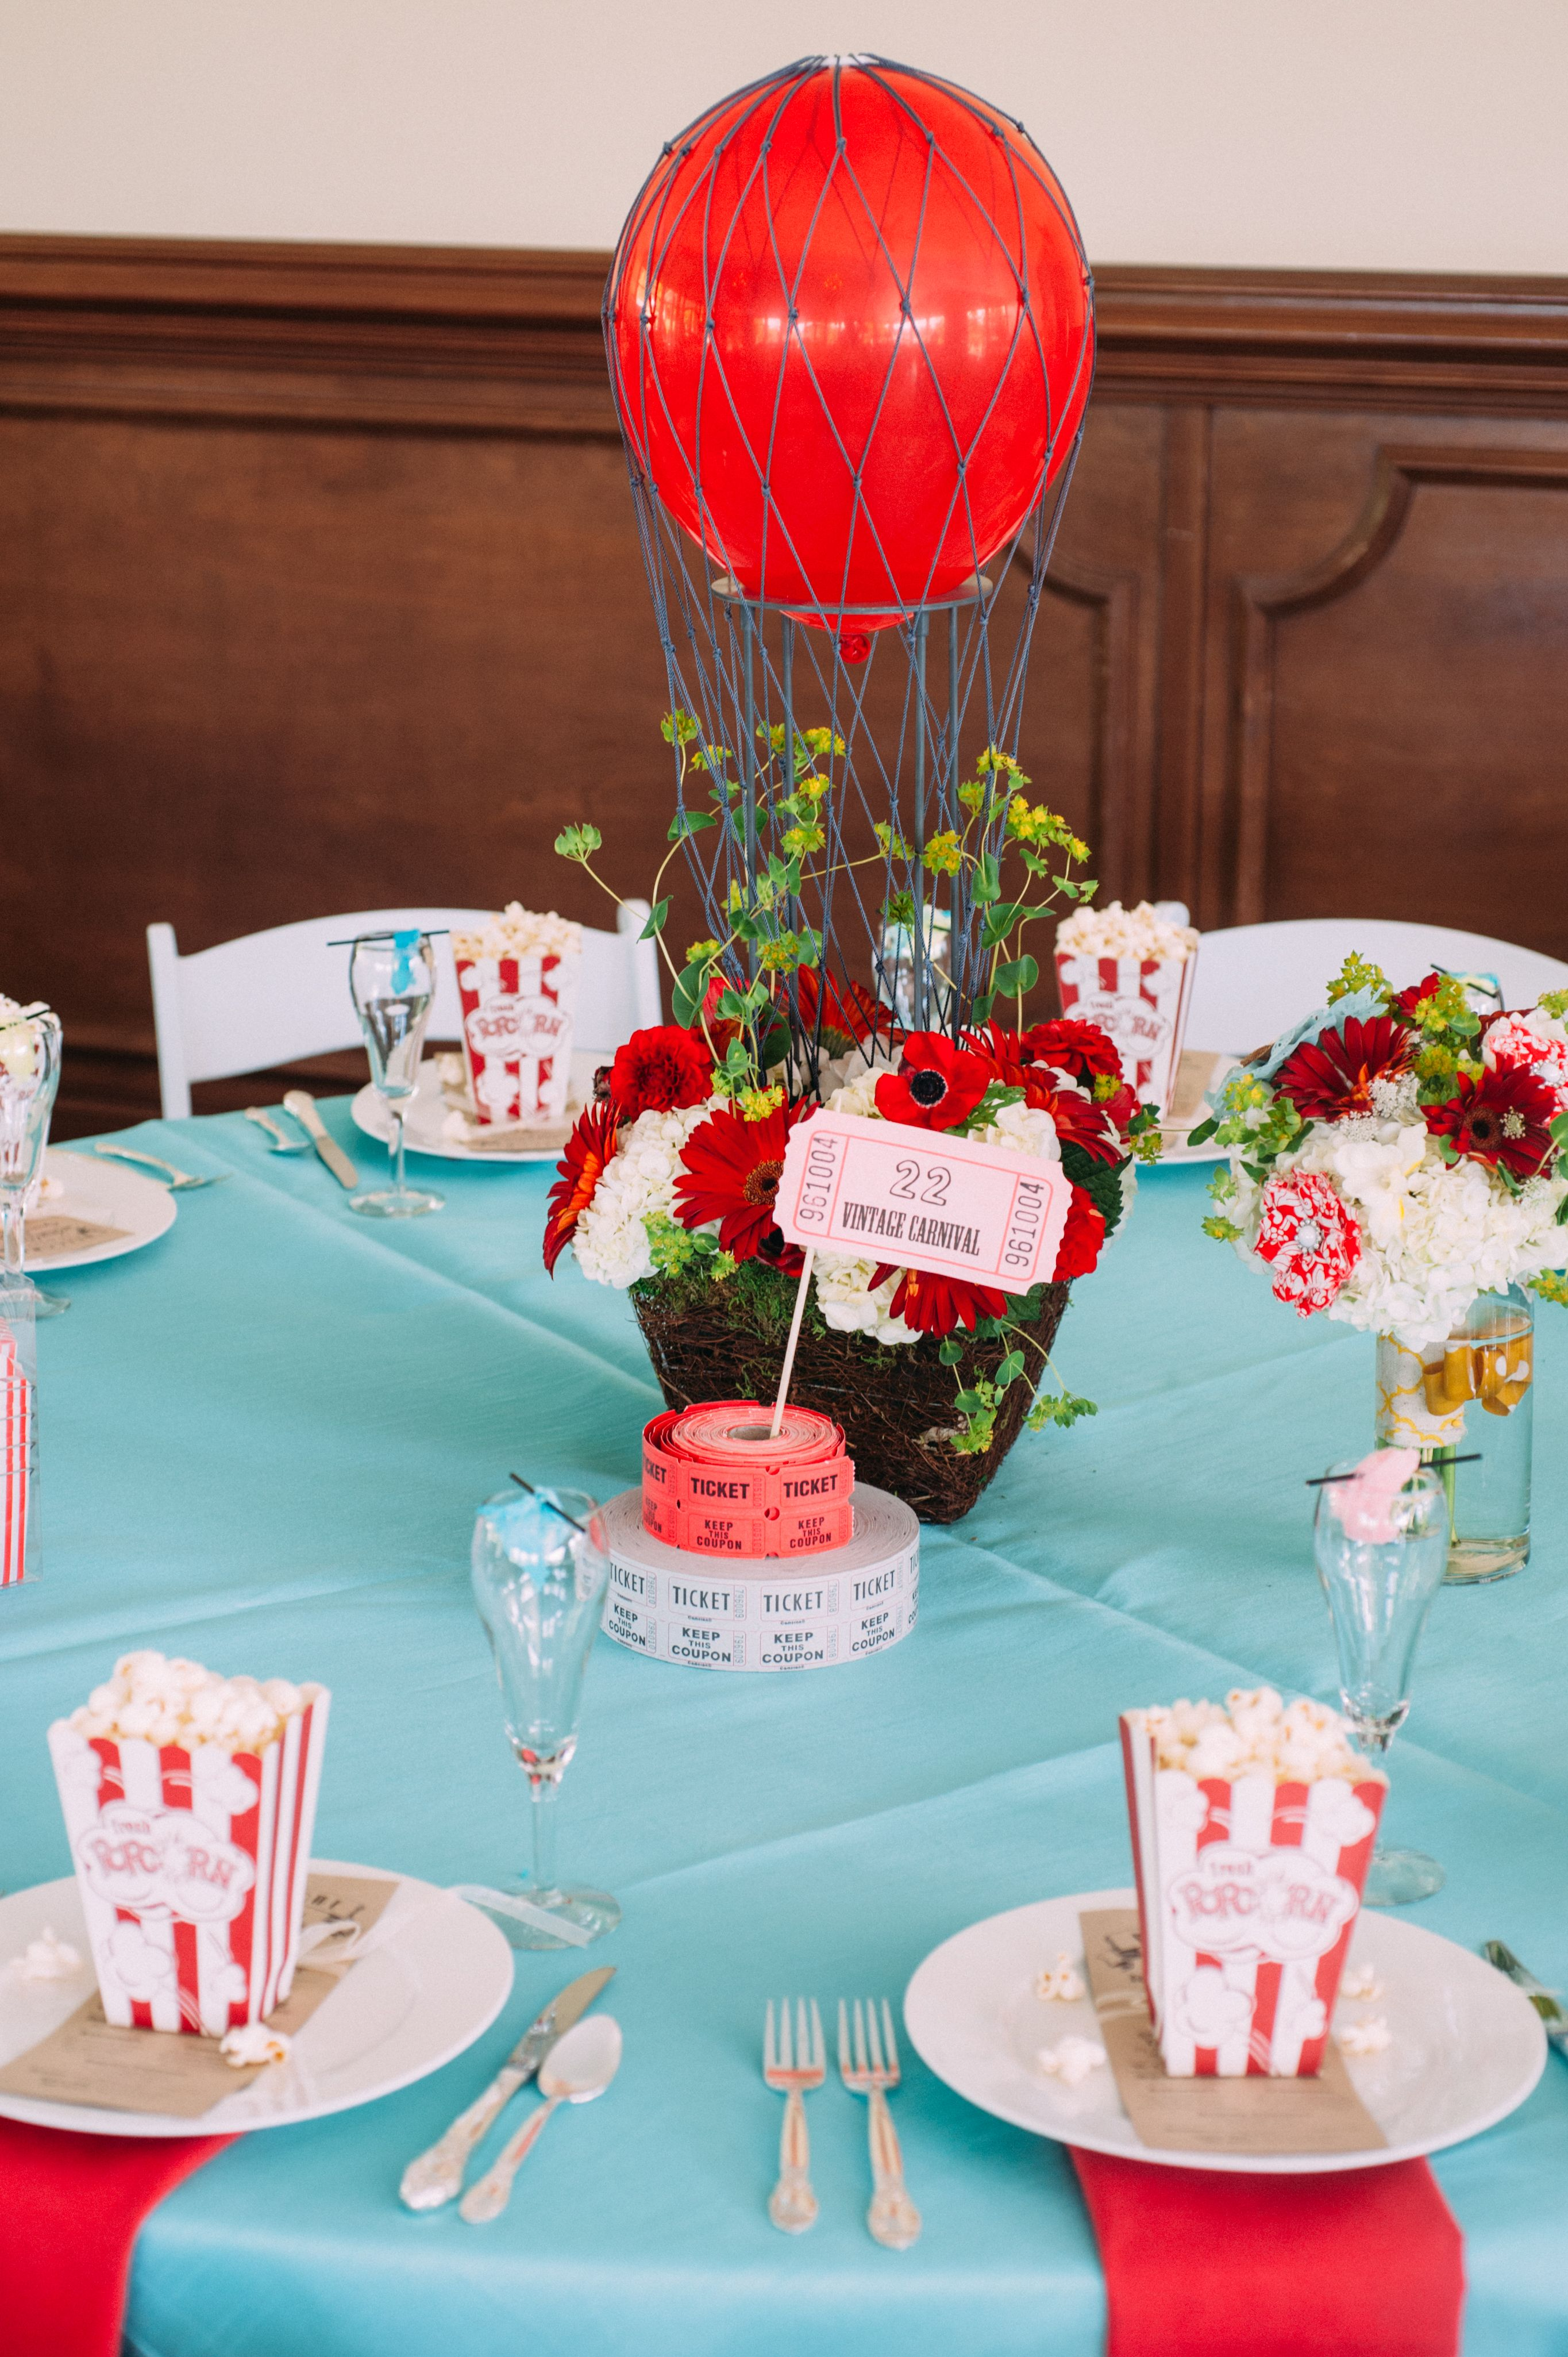 Carnival Table Setting, Movie Night Place Setting, Hot Air